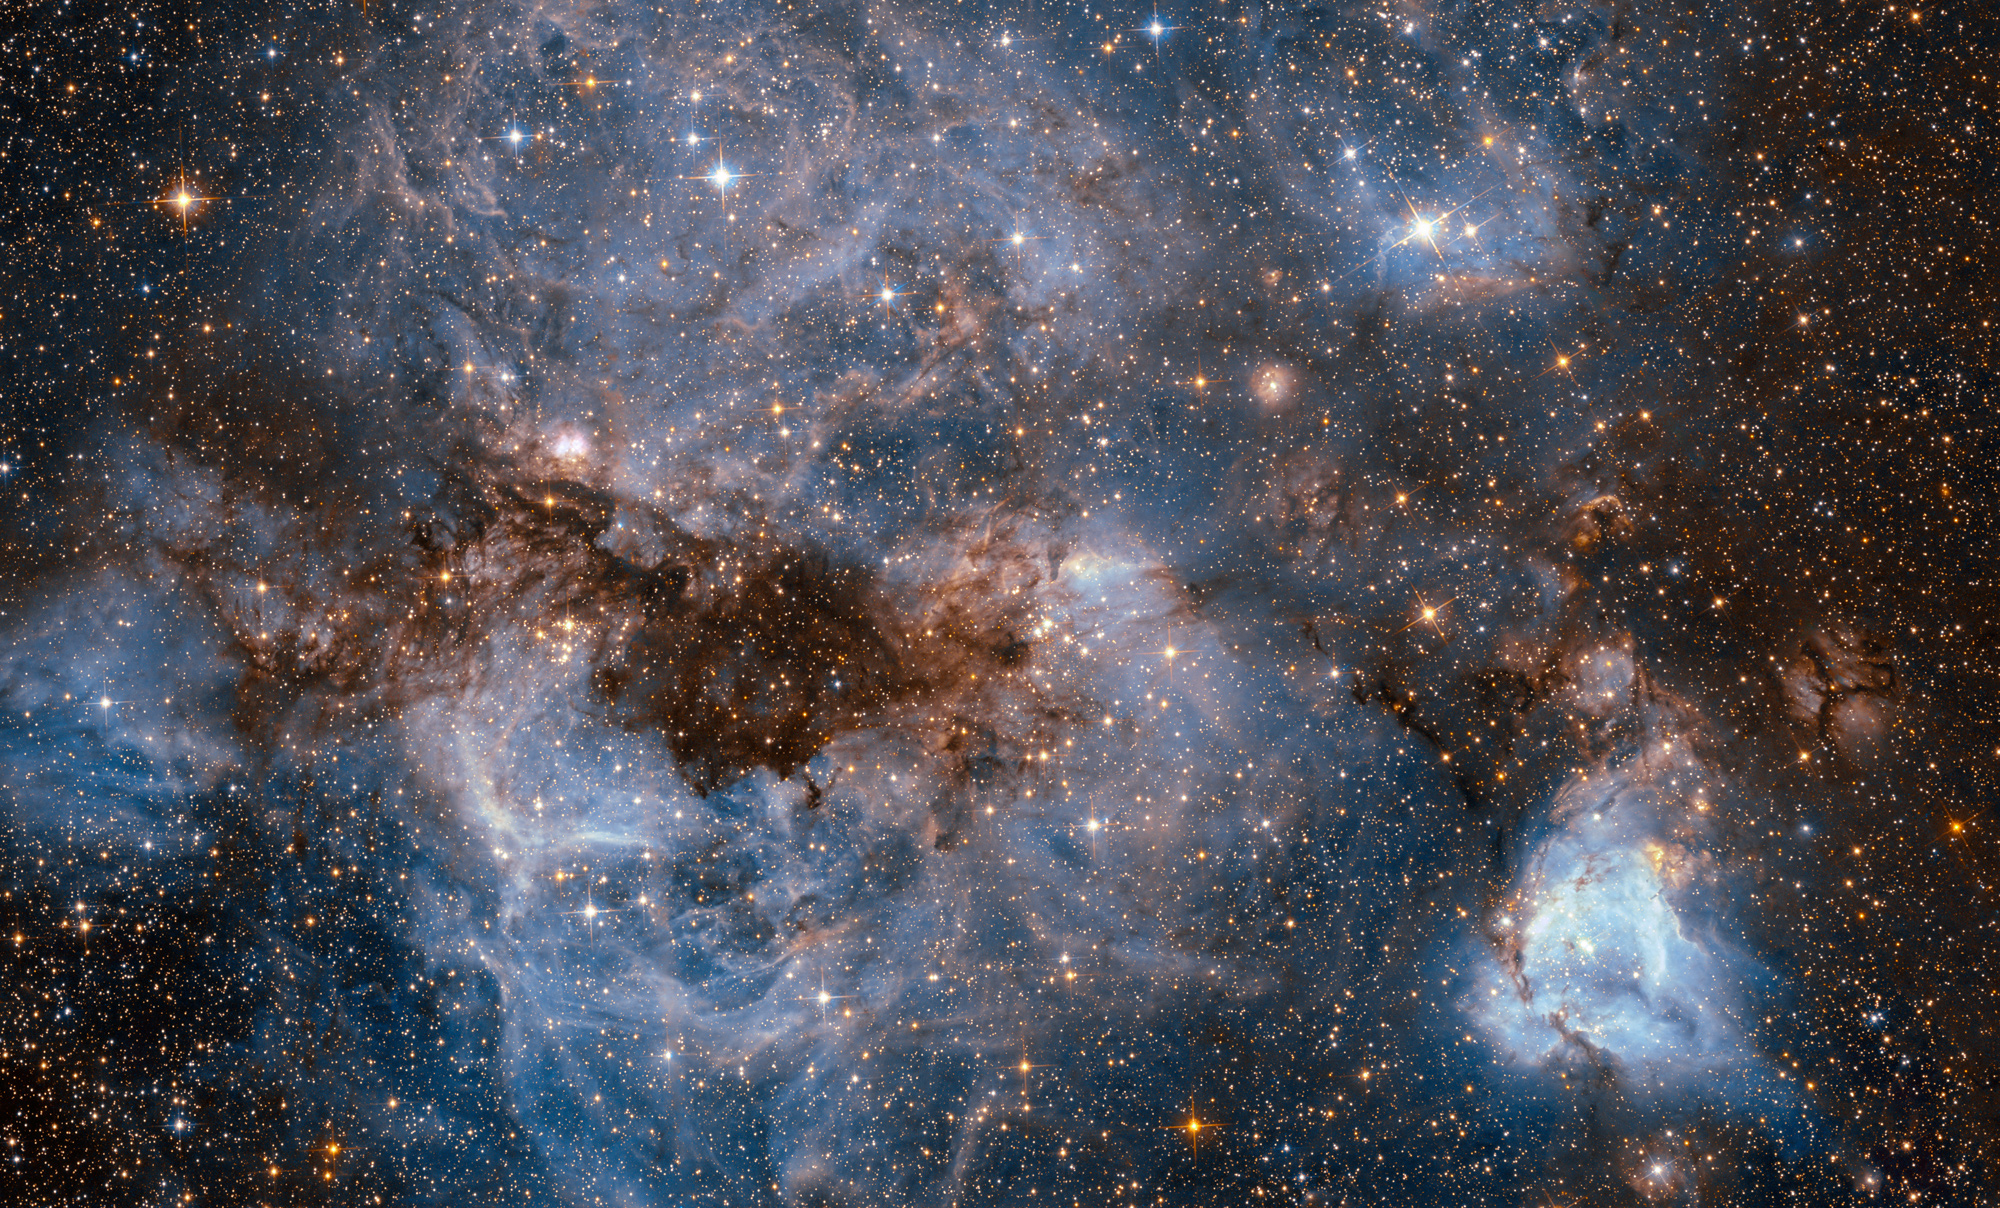 Hubble Telescope Captures Jaw-Dropping Beauty of Nearby Galaxy